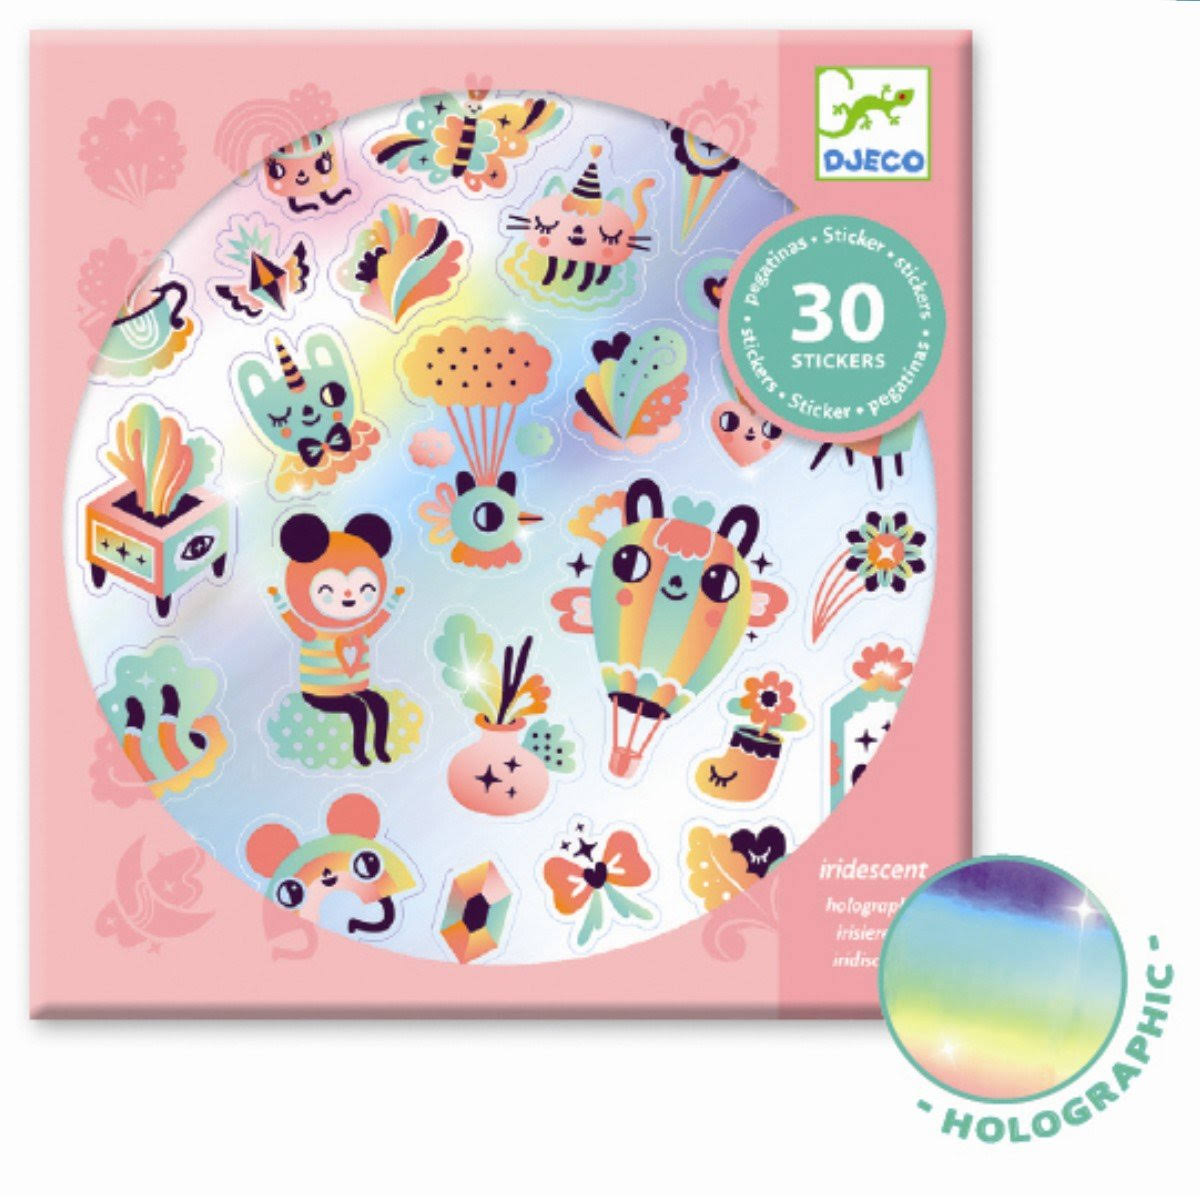 Djeco Holographic Stickers - Lovely Rainbow DJ09264